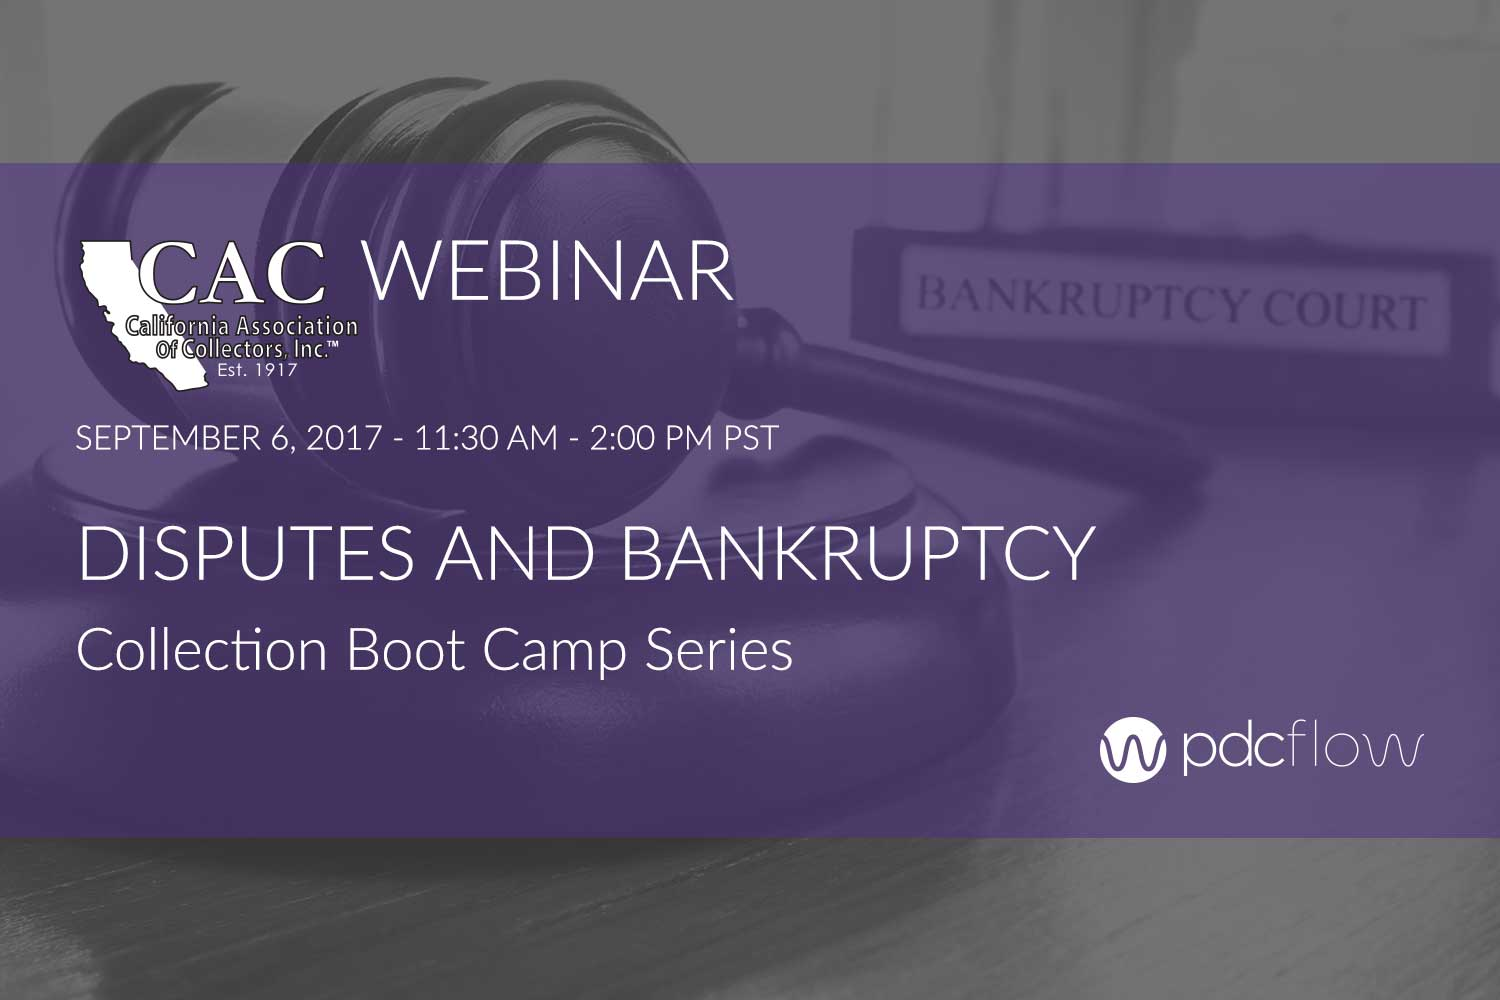 Disputes and Bankruptcy Collection Boot Camp Webinar